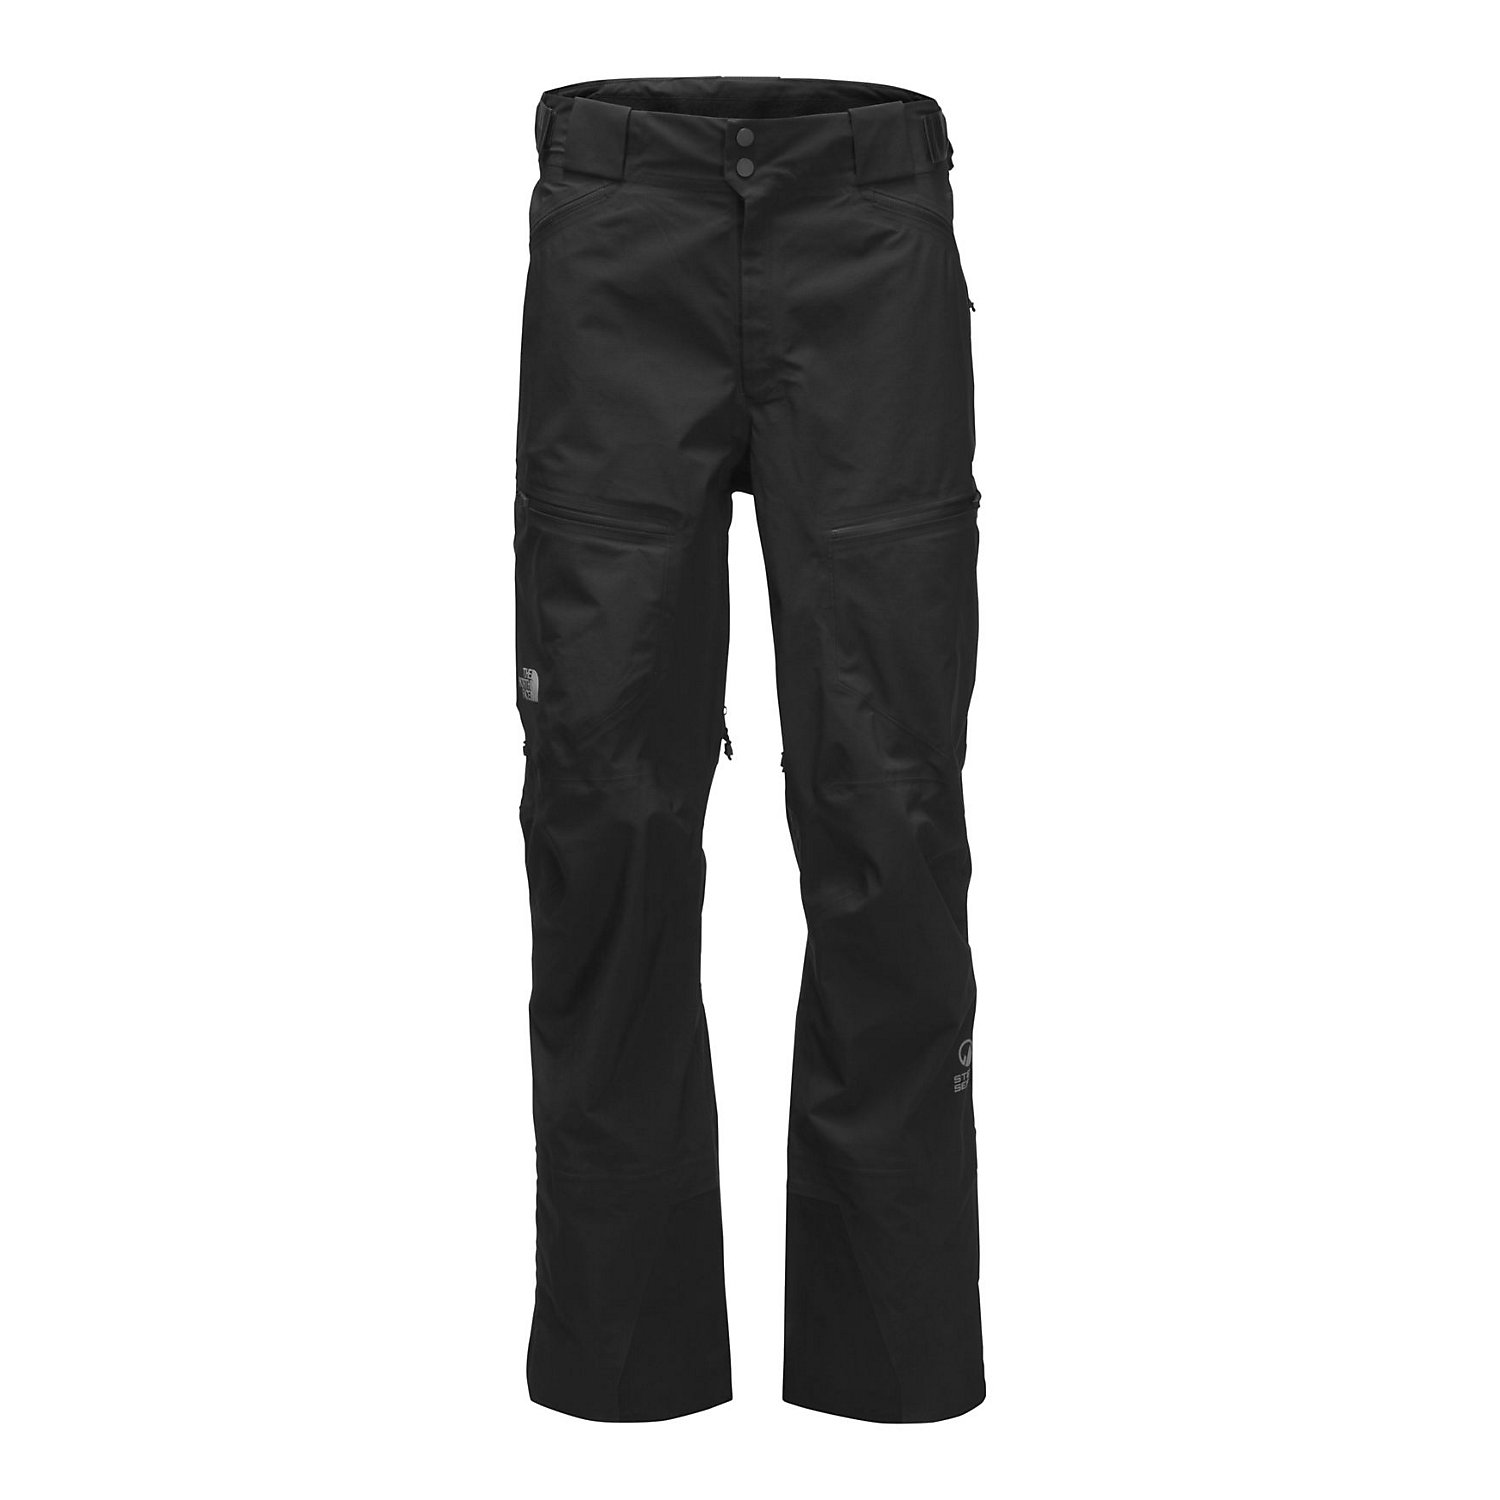 af0bd560f The North Face Steep Series Men's Purist Pant